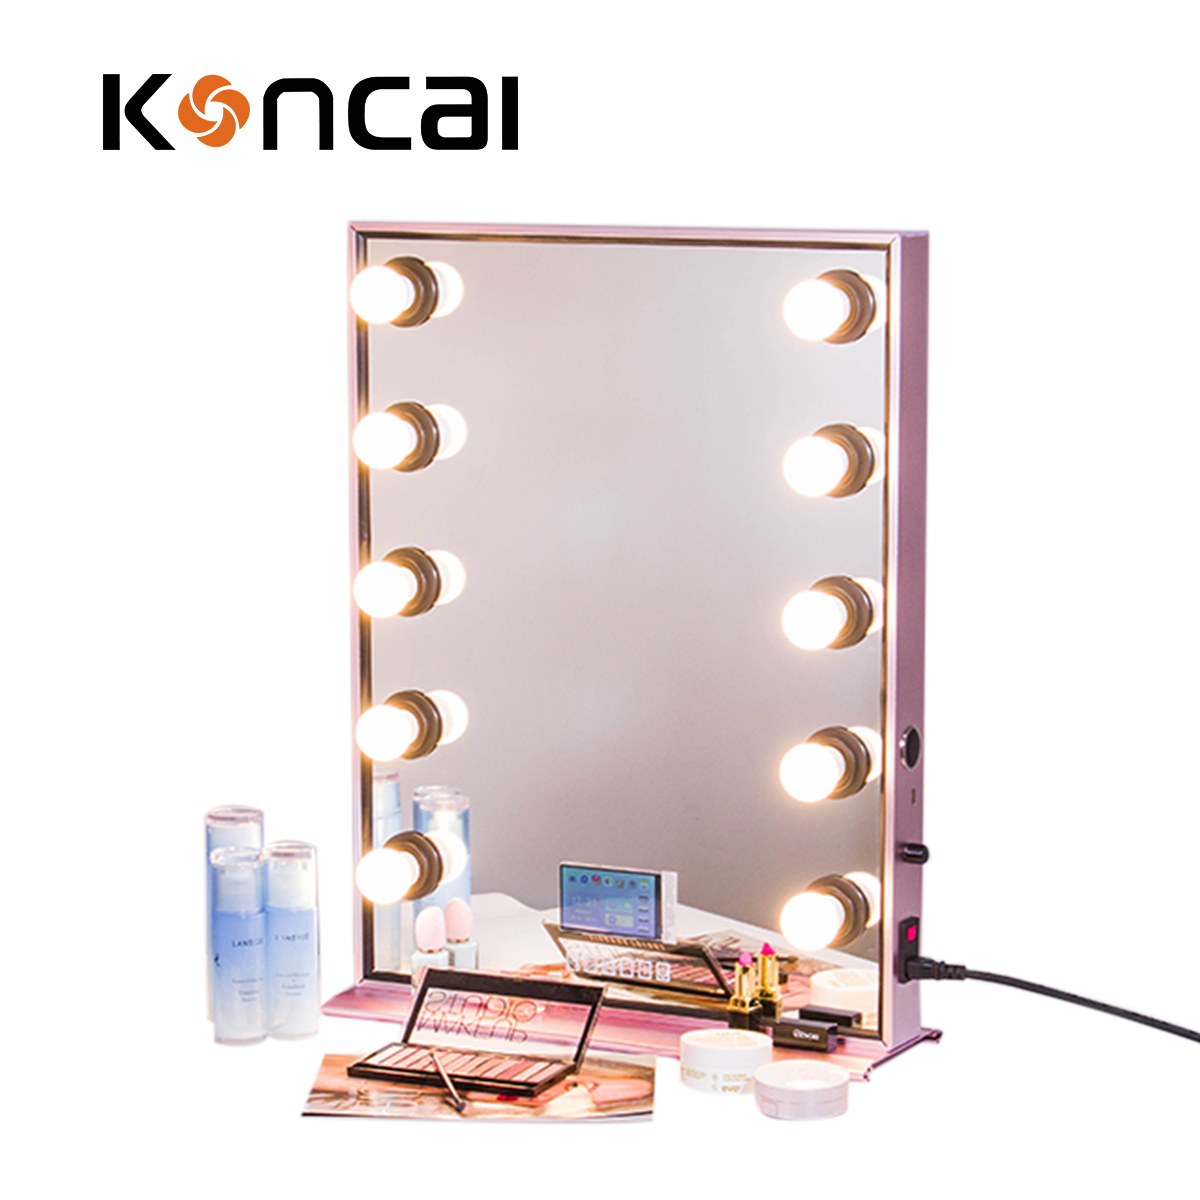 Koncai Unique Style of Makeup Mirror With MP4 Video Rose gold Mirror for Salon